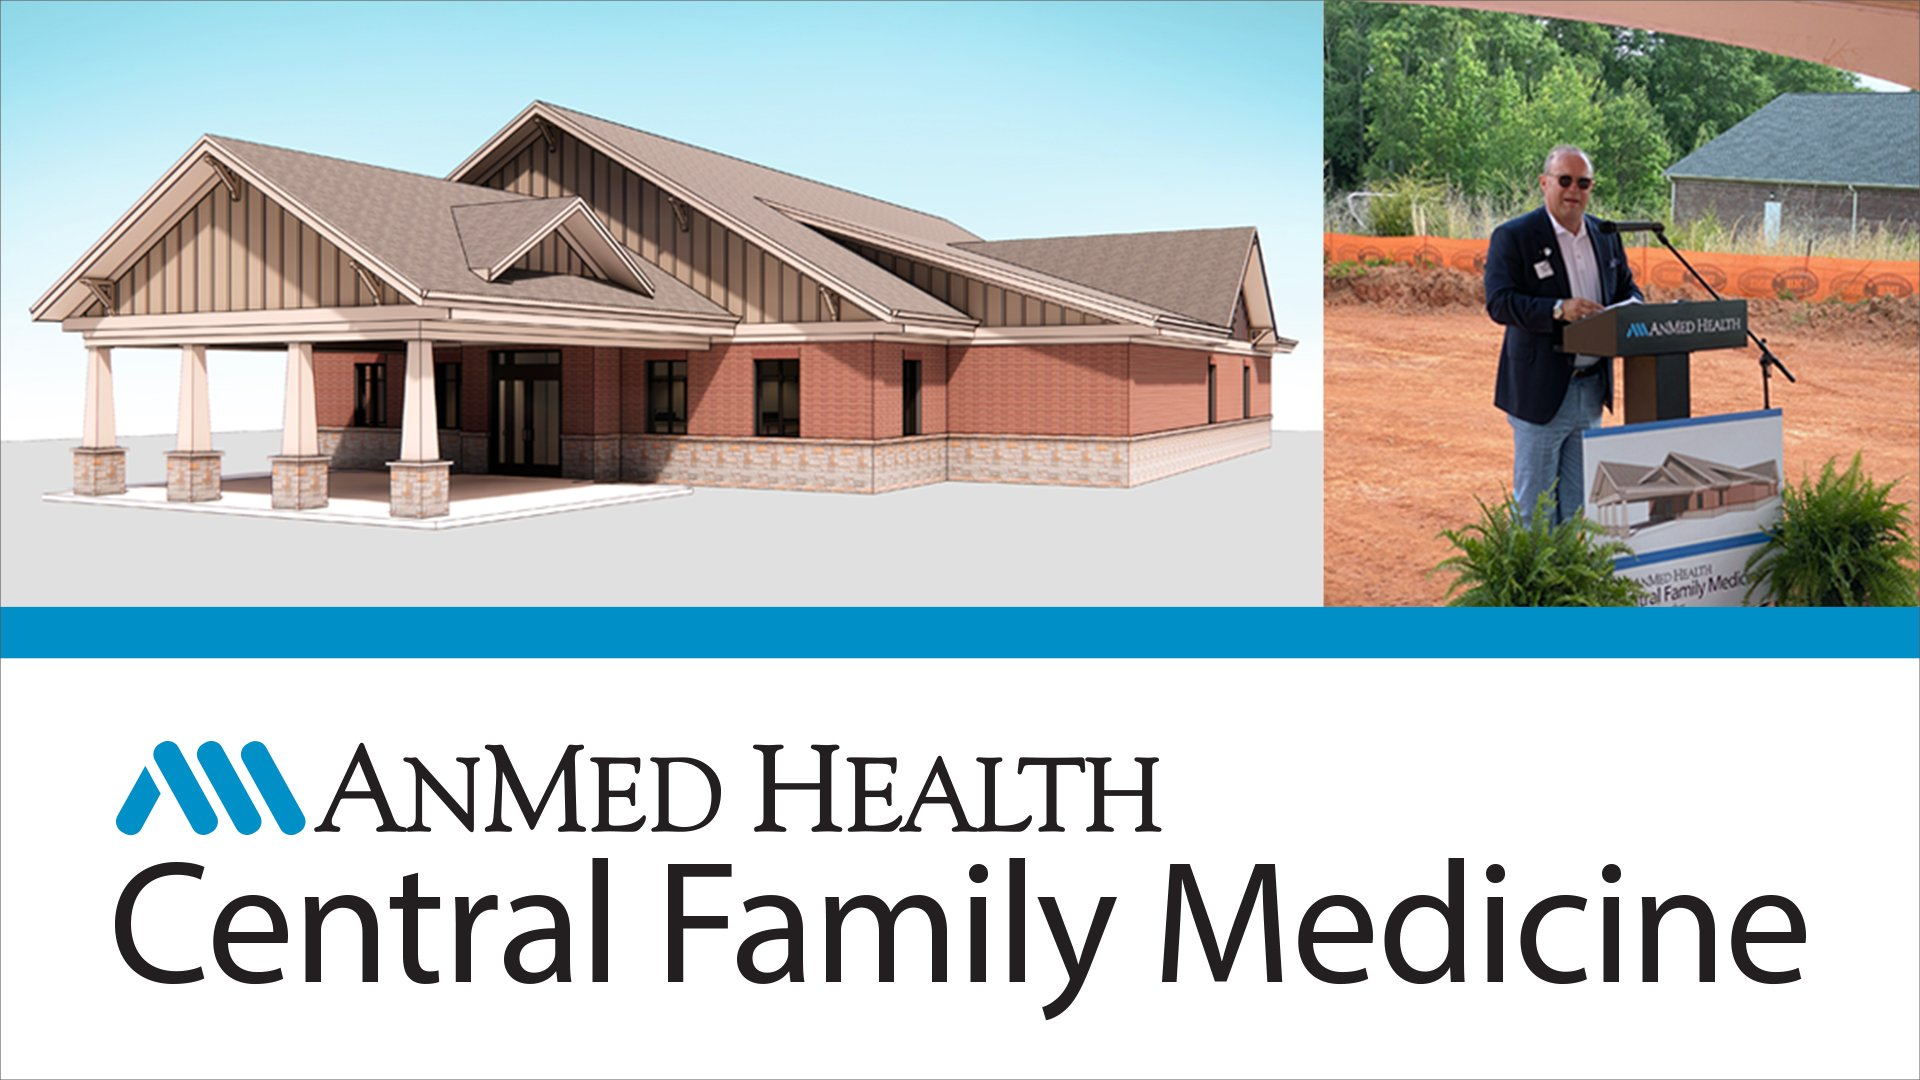 AnMed Health, Central Family Medicine, groundbreaking